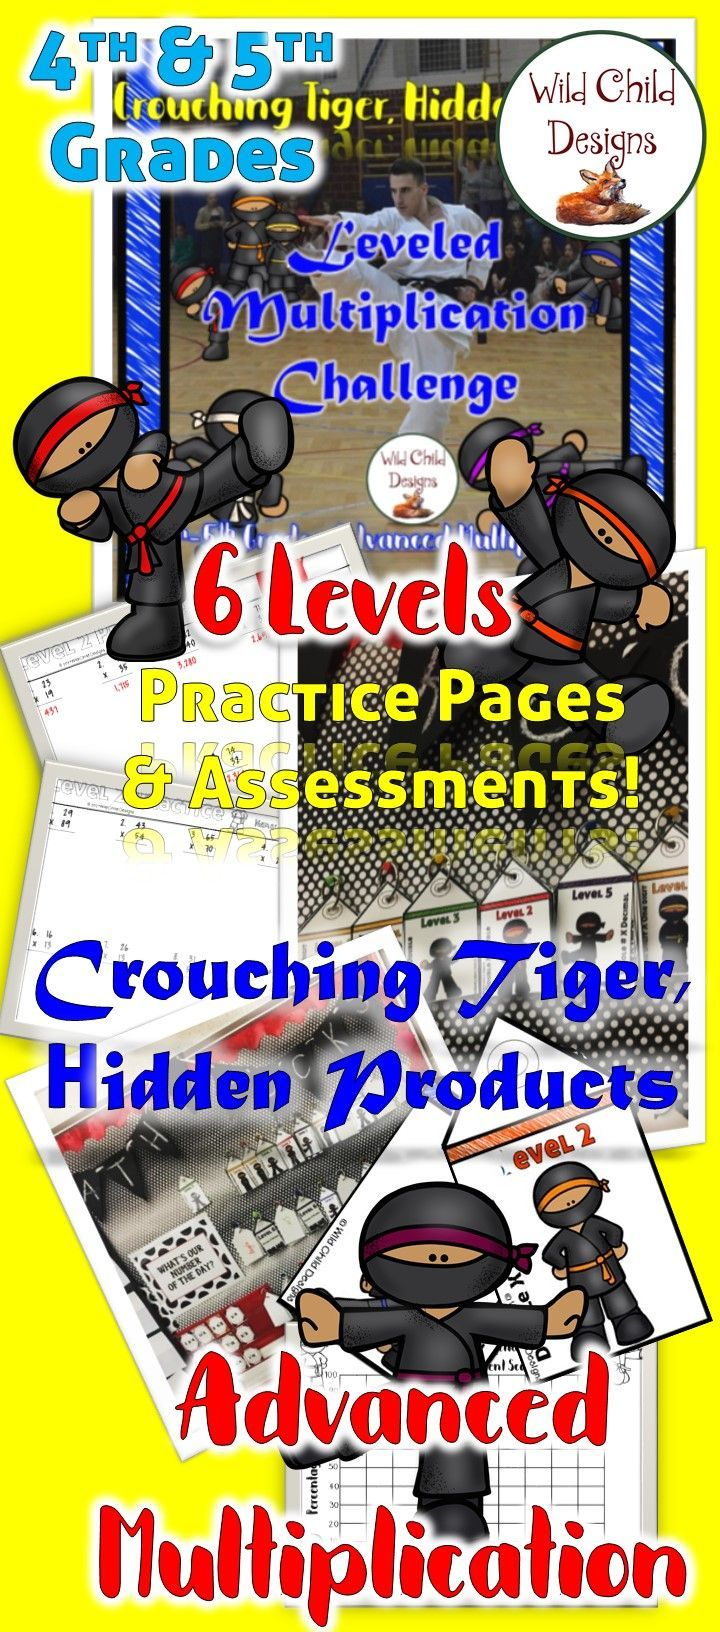 Take a leveled approach to help your students learn advanced multiplication. This product breaks it down into levels, making it less overwhelming and more engaging for your students. They'll LOVE the brag tags, too!